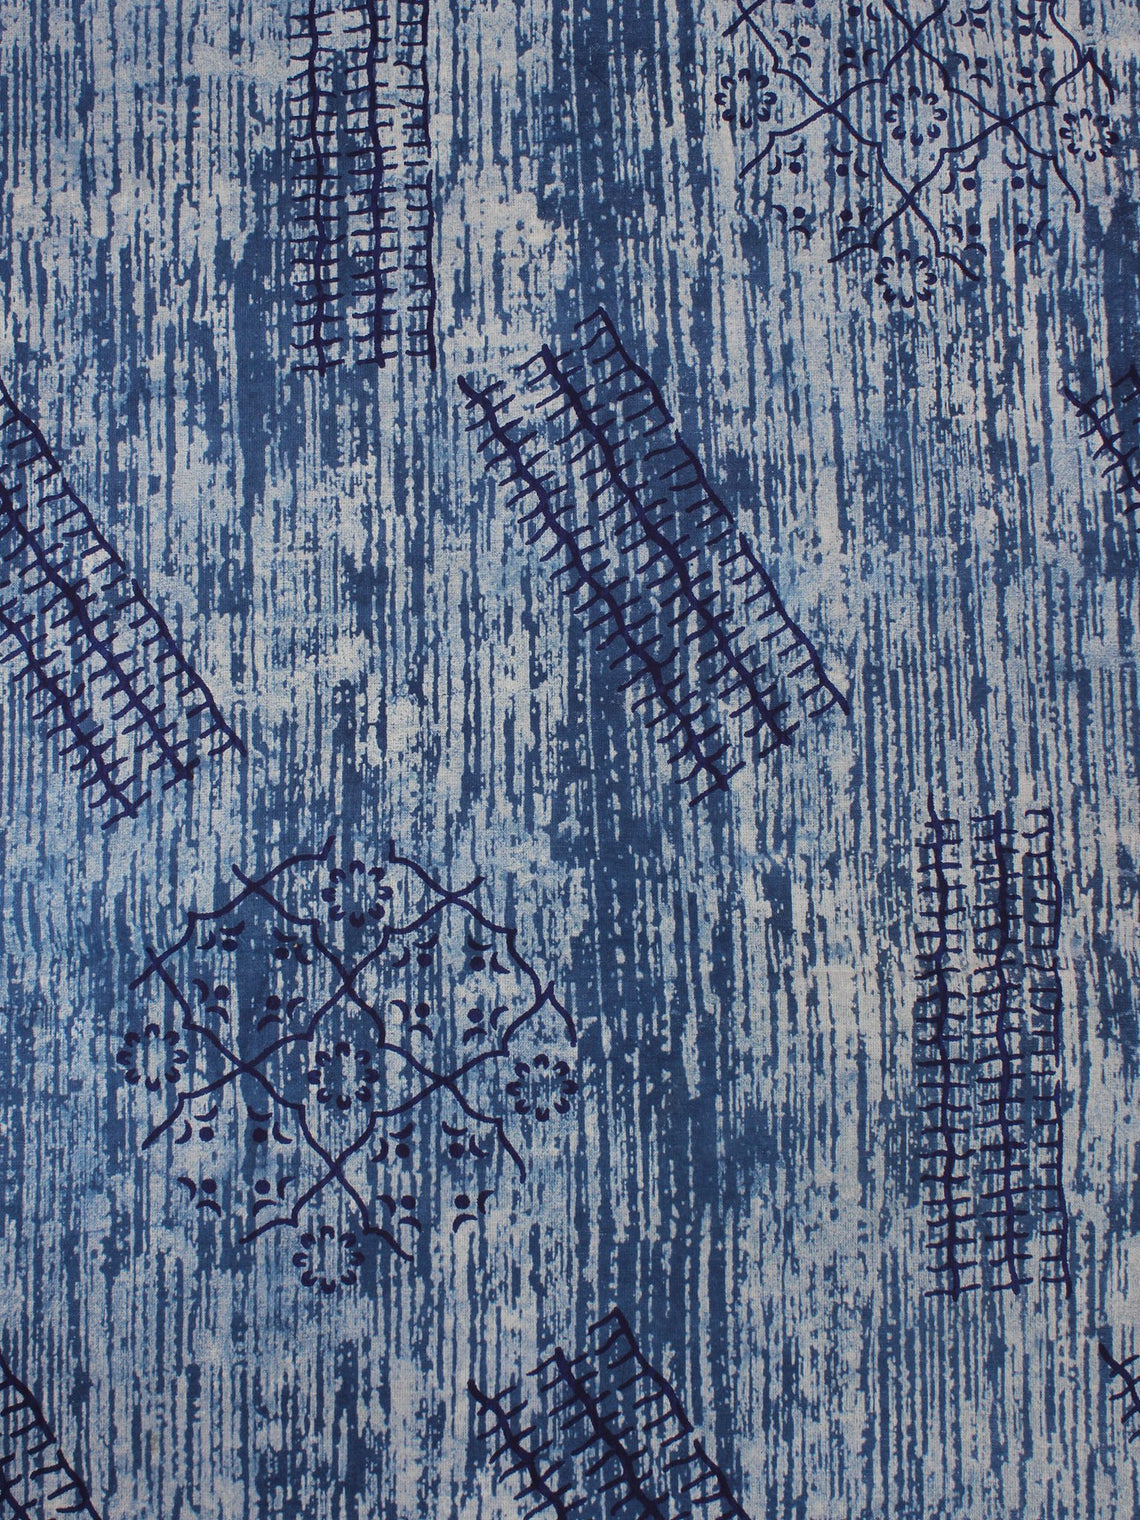 Indigo Blue Natural Dyed Hand Block Printed Cotton Fabric Per Meter - F0916359